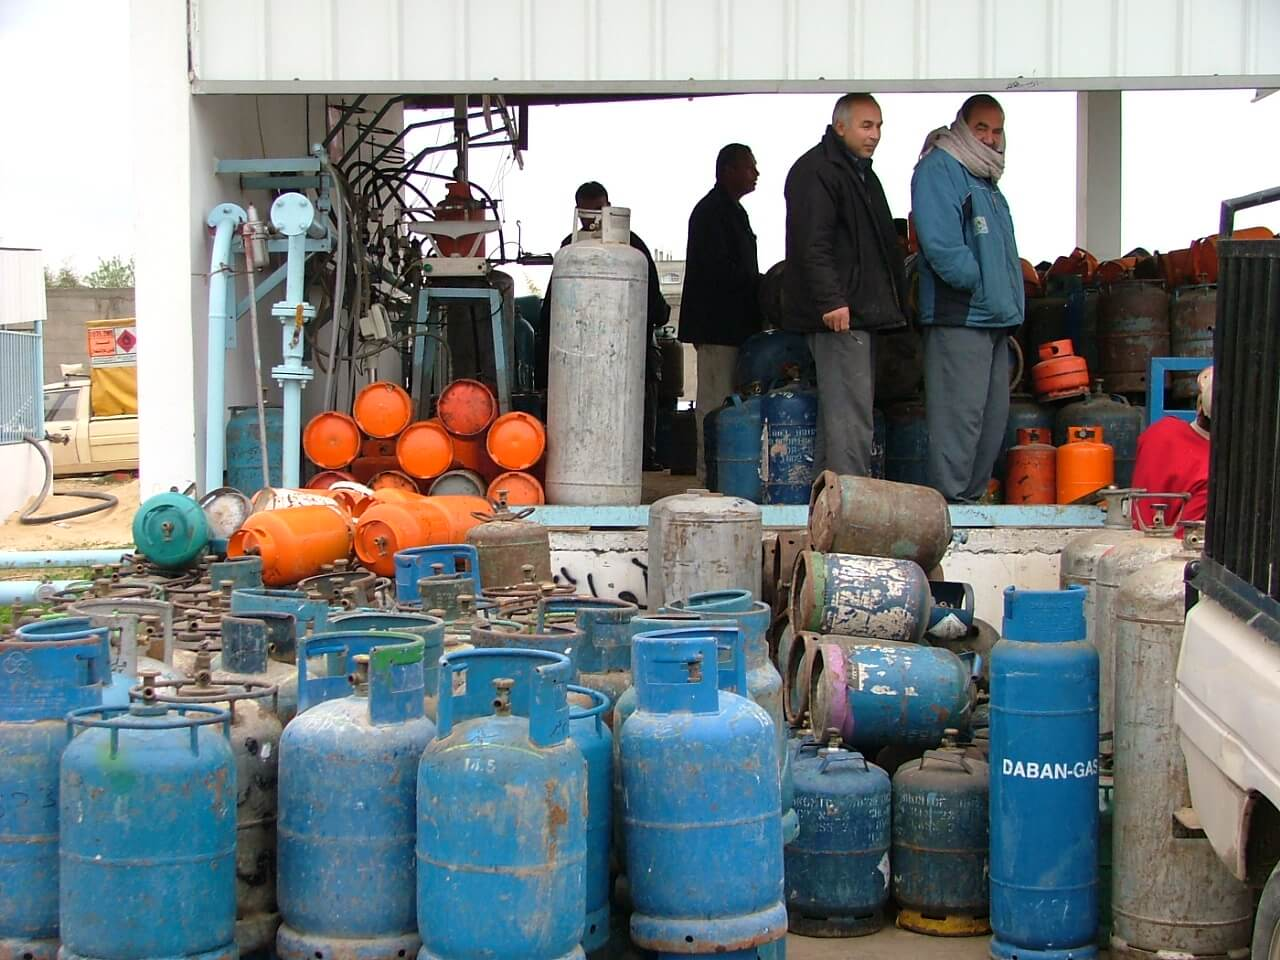 There is also a gas crisis in Gaza. Here people line up to receive their share of gas. (Photo: Isra Saleh El-Namy)